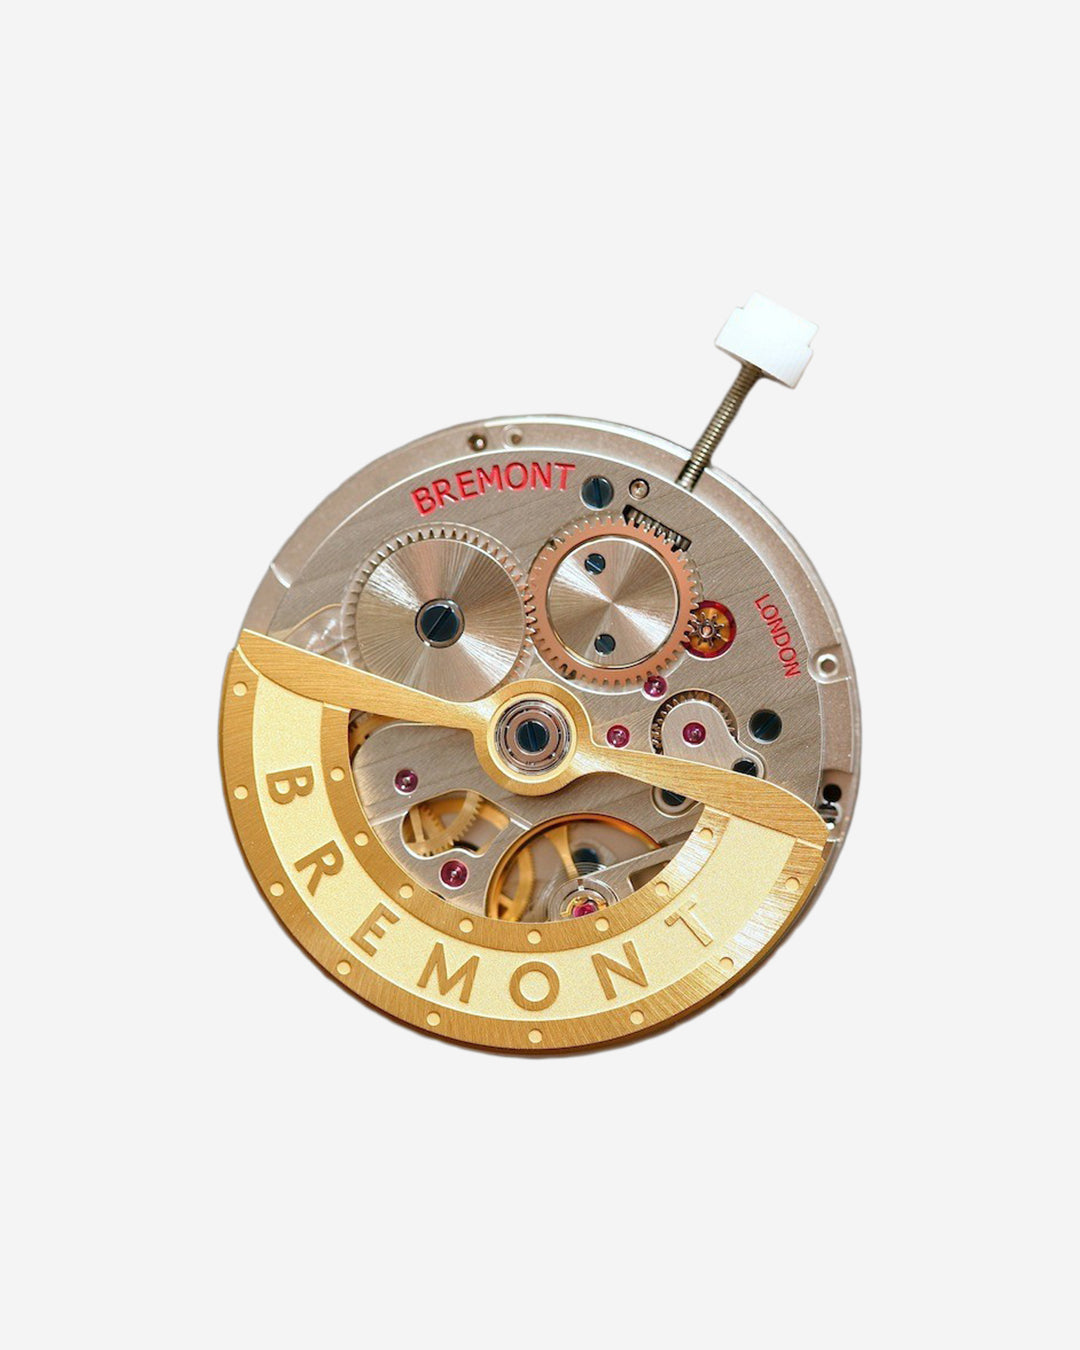 Bremont watch movement on grey background in In-house or ébauche, and does it even matter anymore? For A Collected Man London